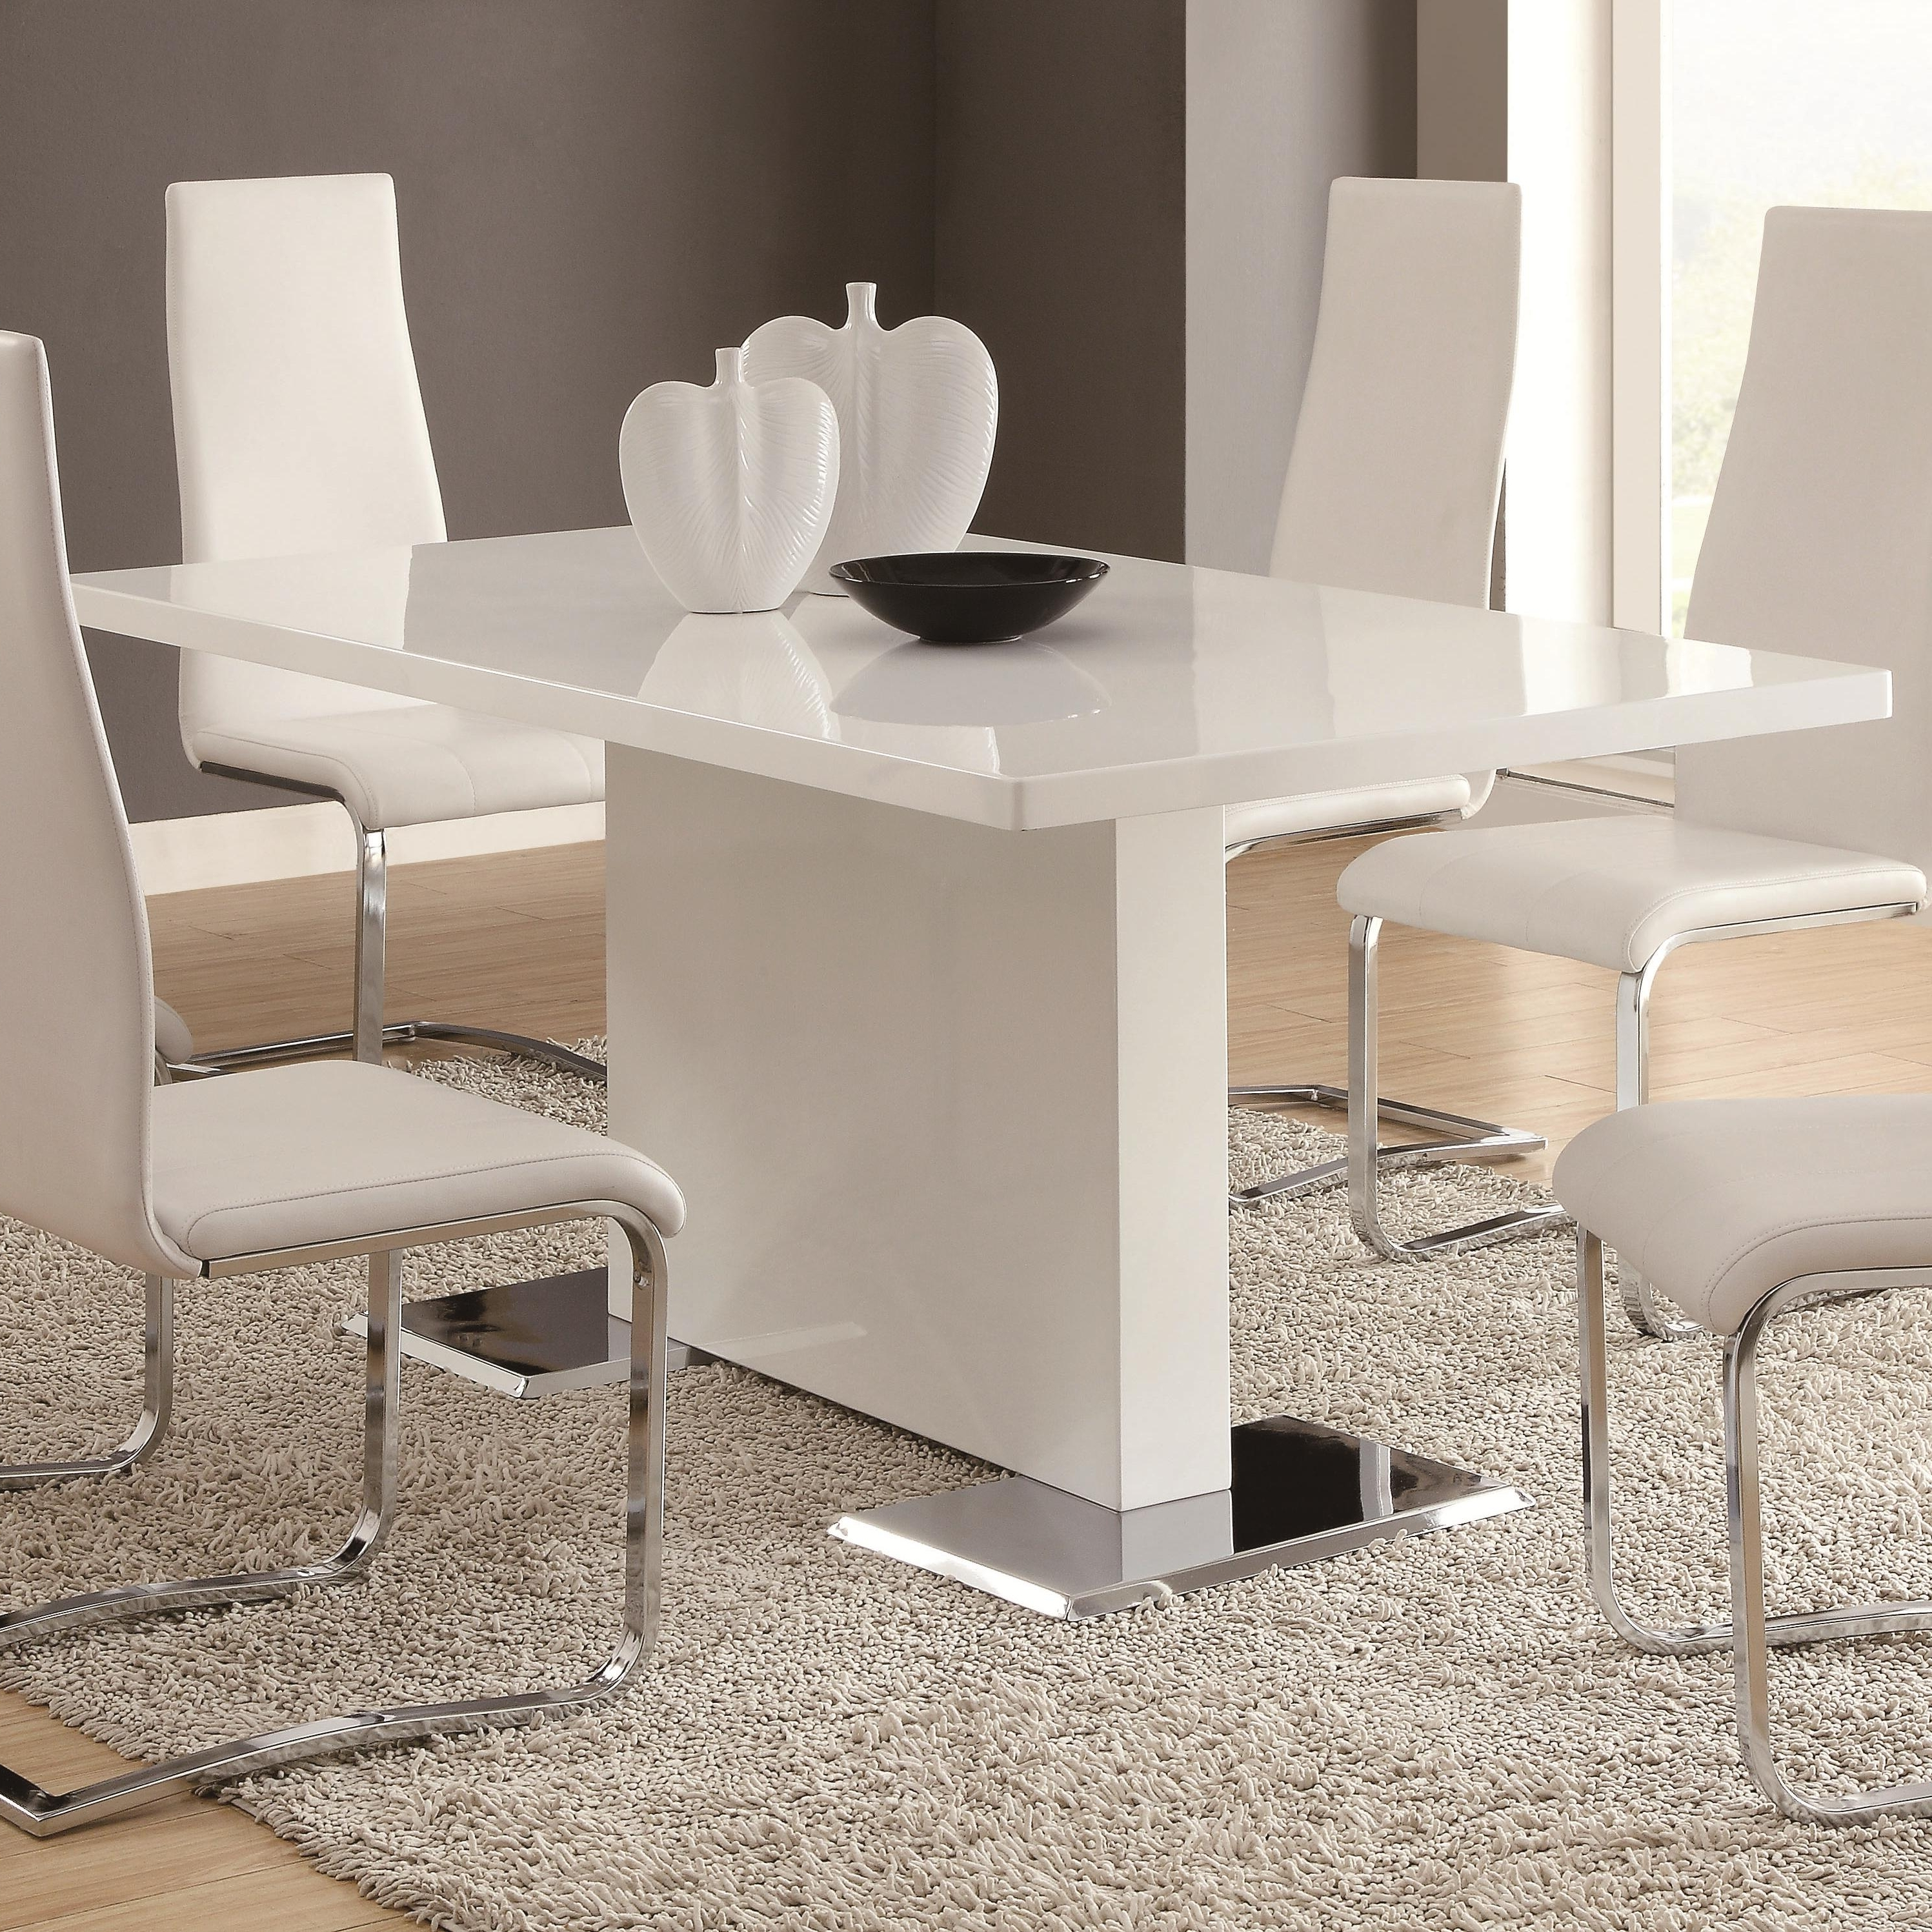 The Classy Home Pertaining To White Dining Tables (View 14 of 25)